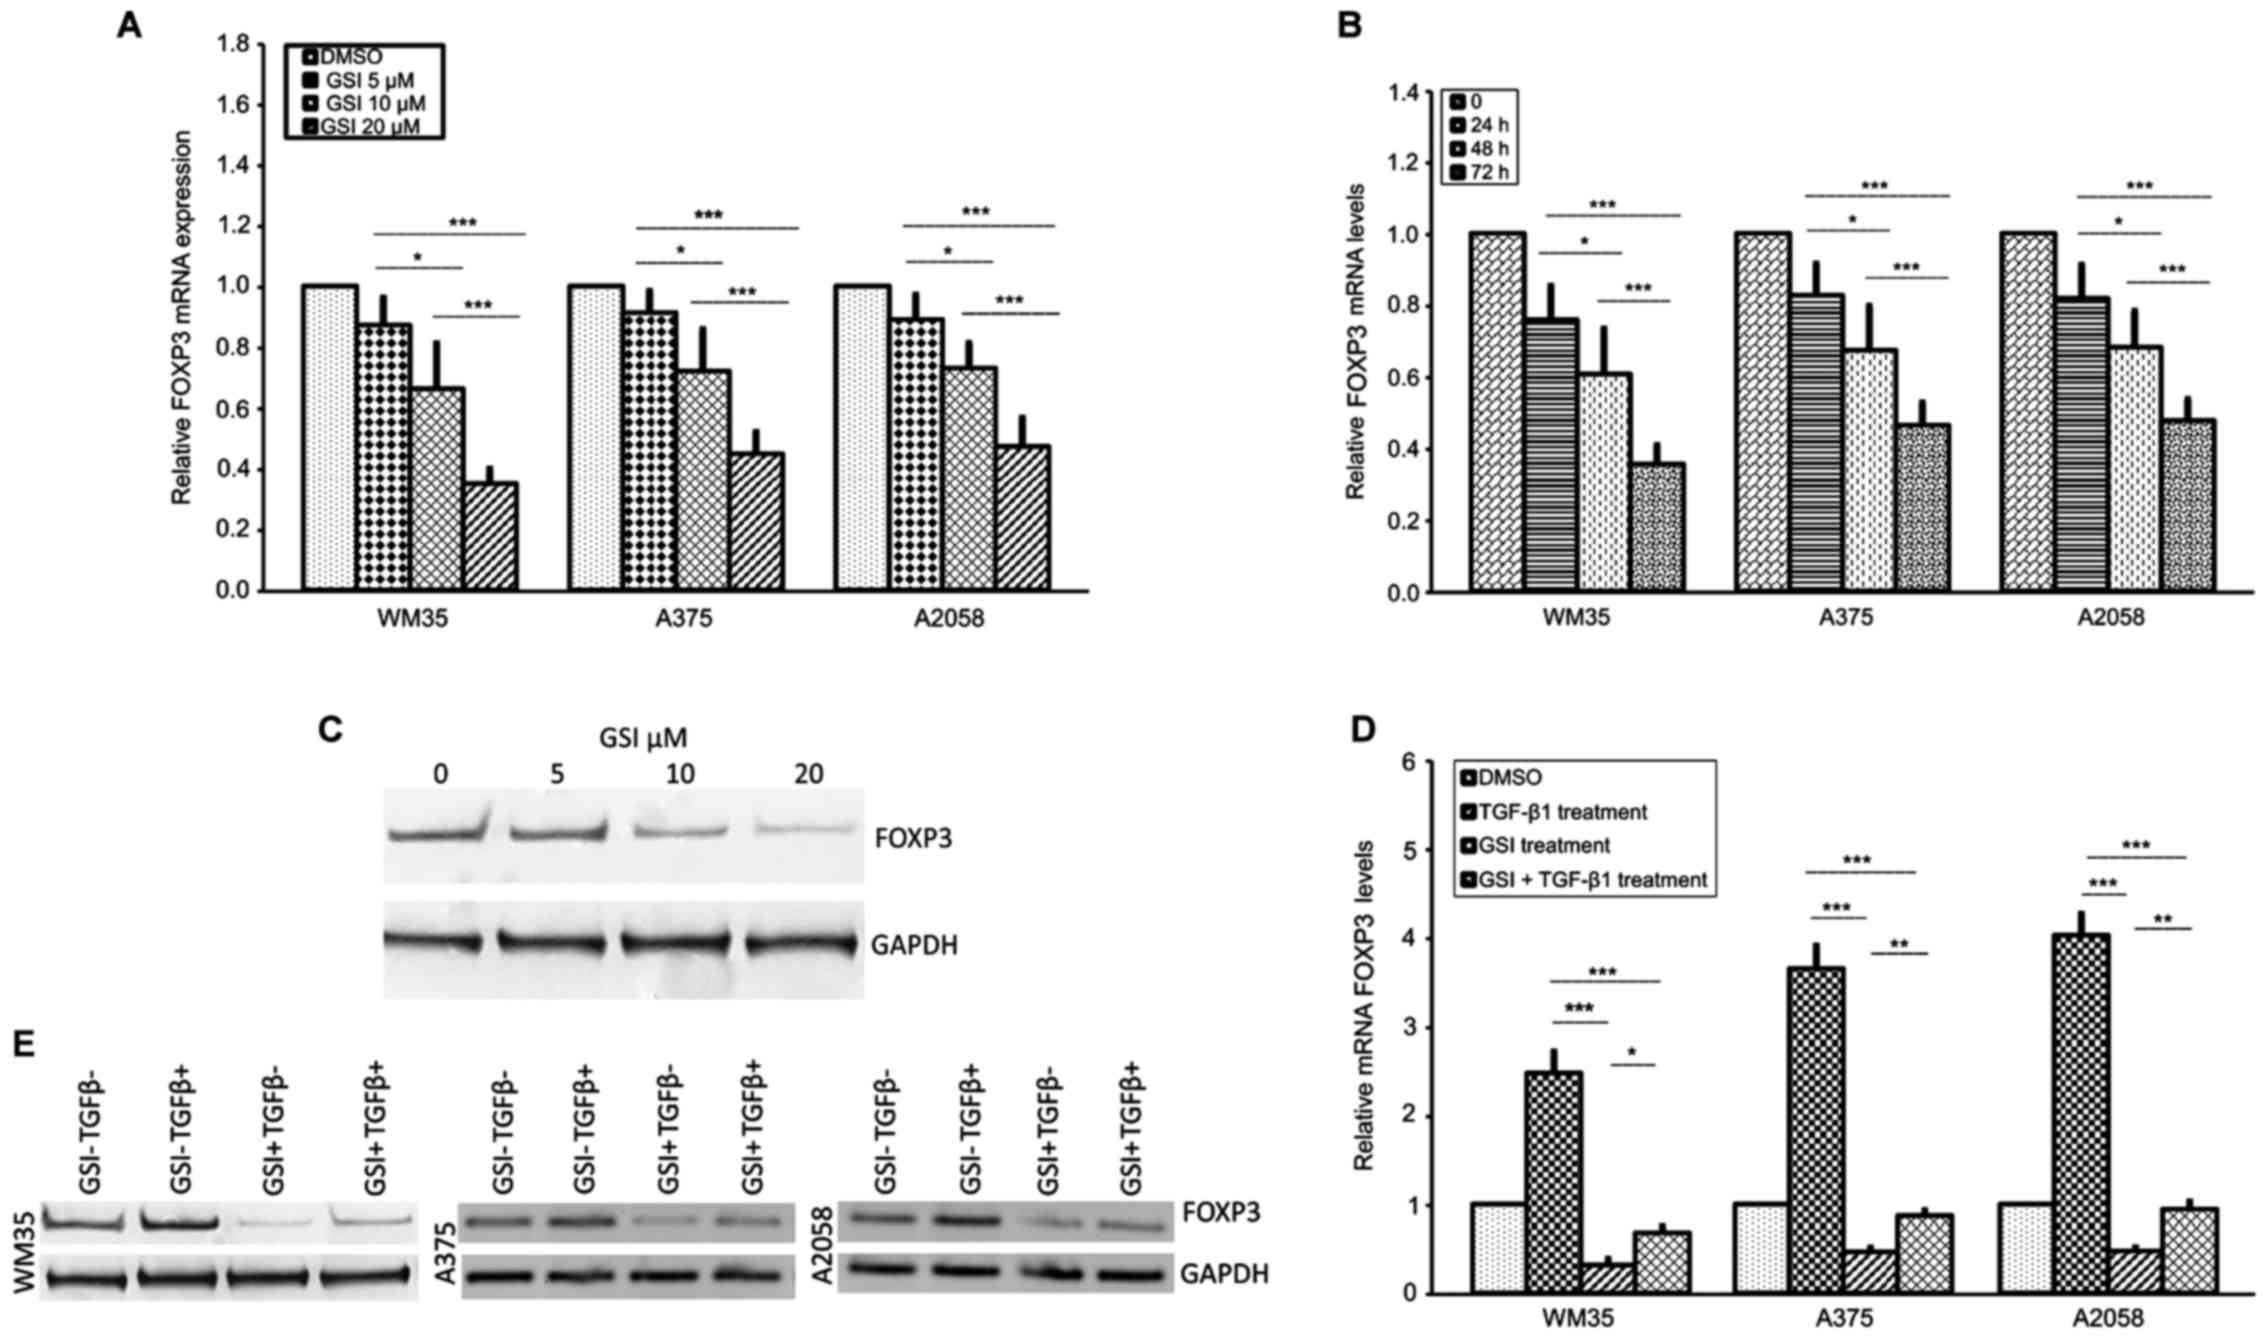 FOXP3 expression is modulated by TGF‑β1/NOTCH1 pathway in